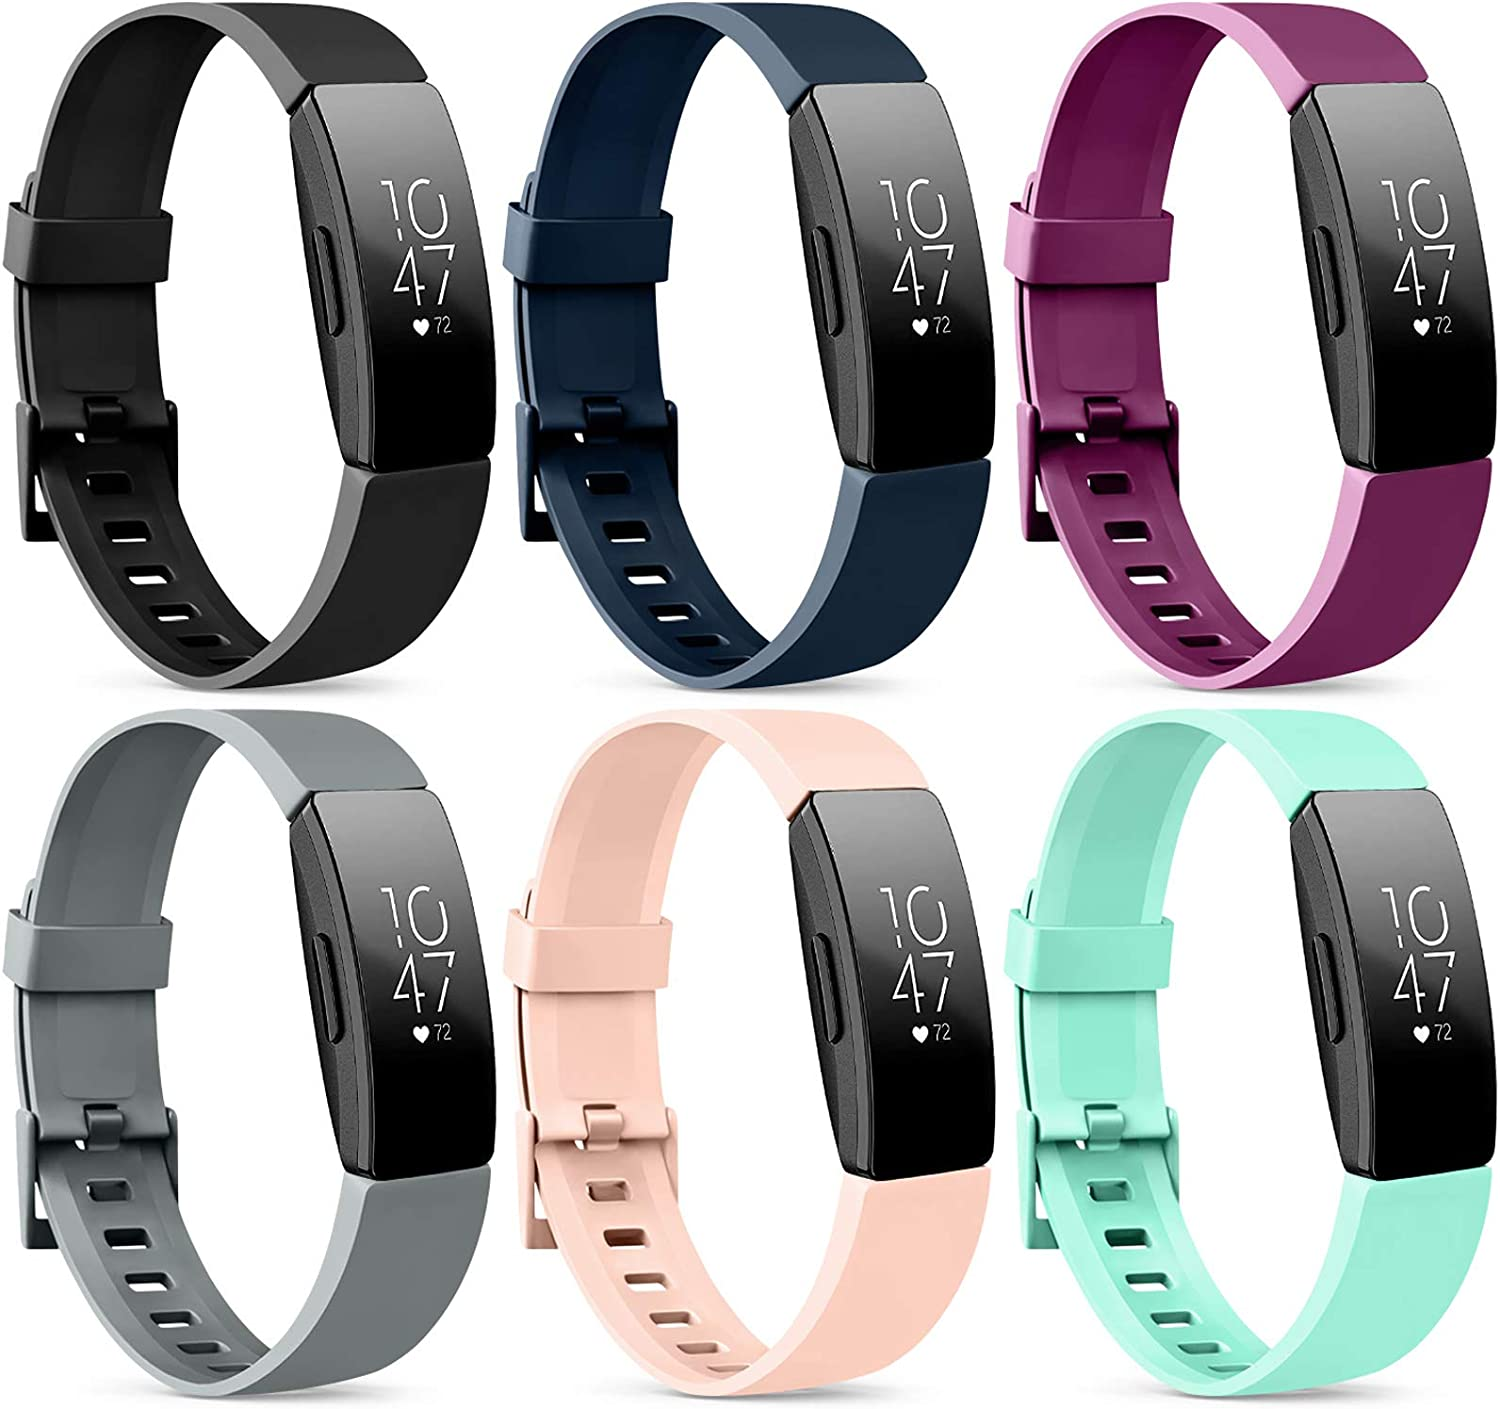 Strap Compatible for Fitbit Inspire Hr Small Women Men Silicone Gel Bands Replacement for Inspire Hr Color Feather Design